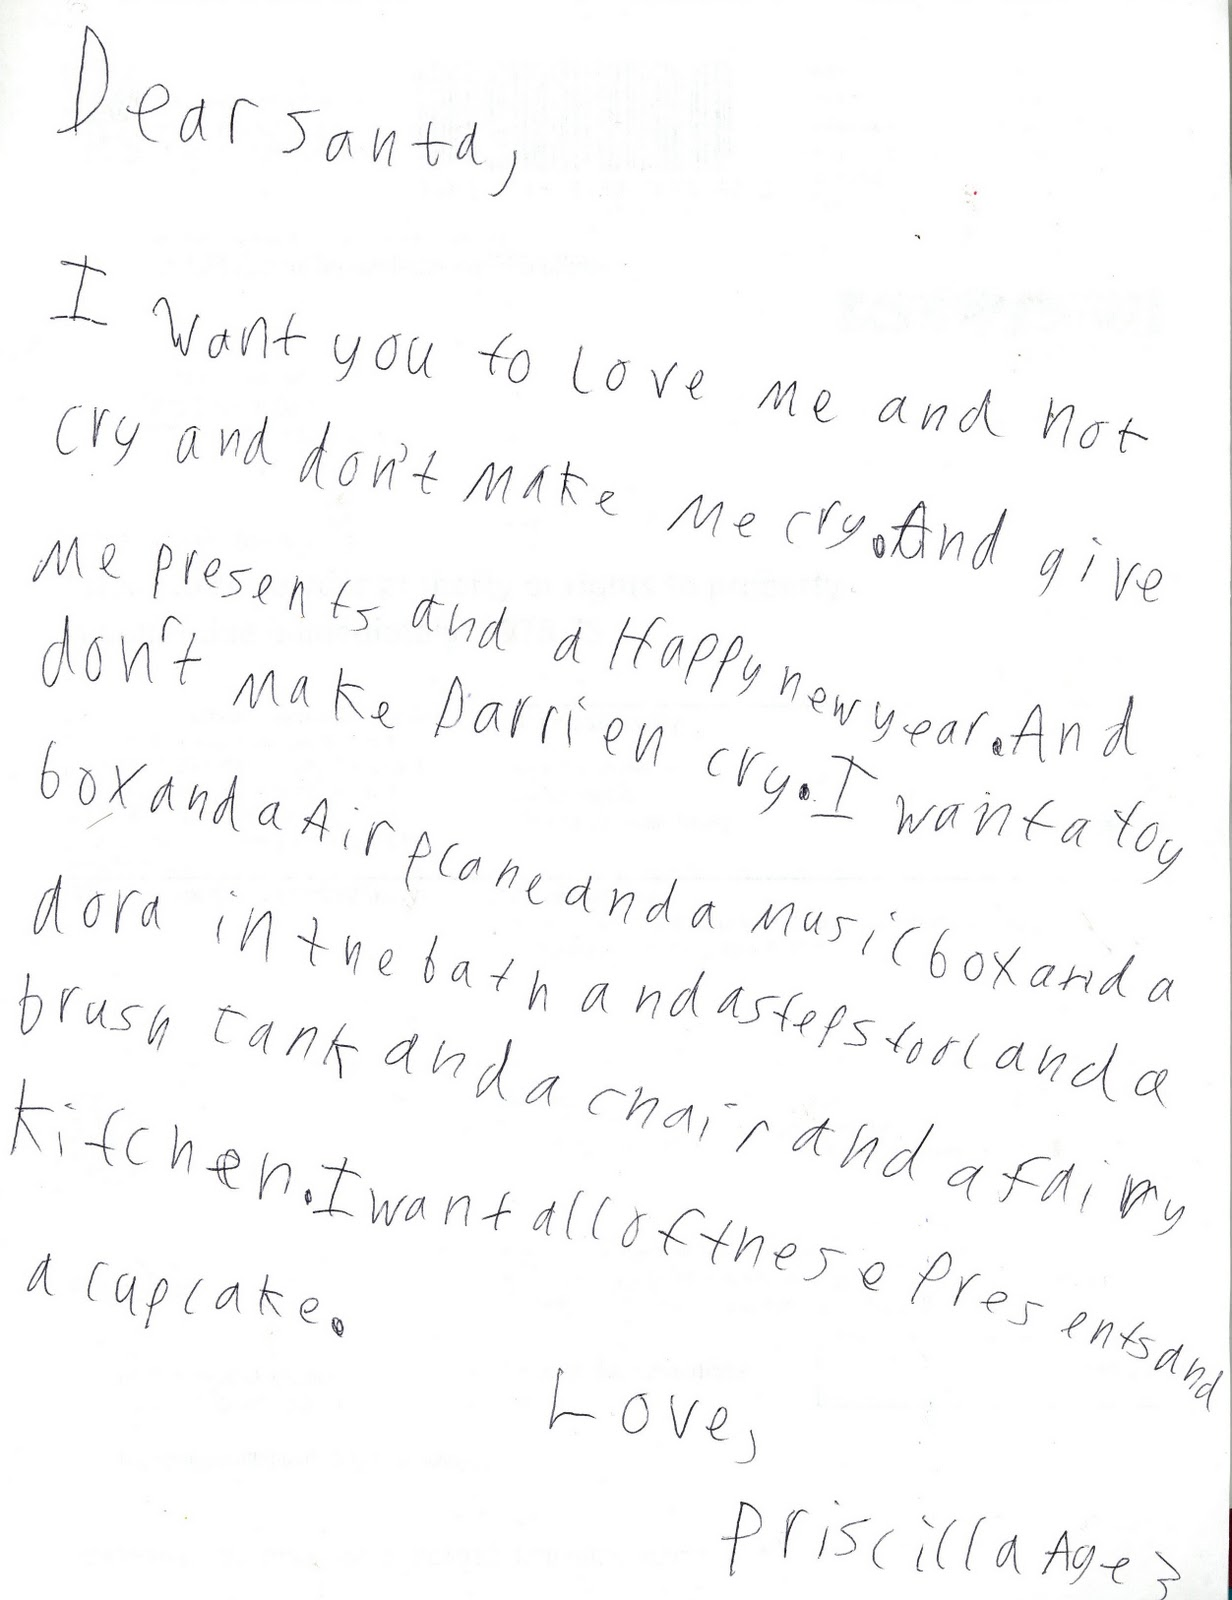 Letters to santa a renaissance woman my kids have prepared their letters to santa my 11 year old transcribed while the 3 year old rattled off her list hopefully you can read it spiritdancerdesigns Gallery